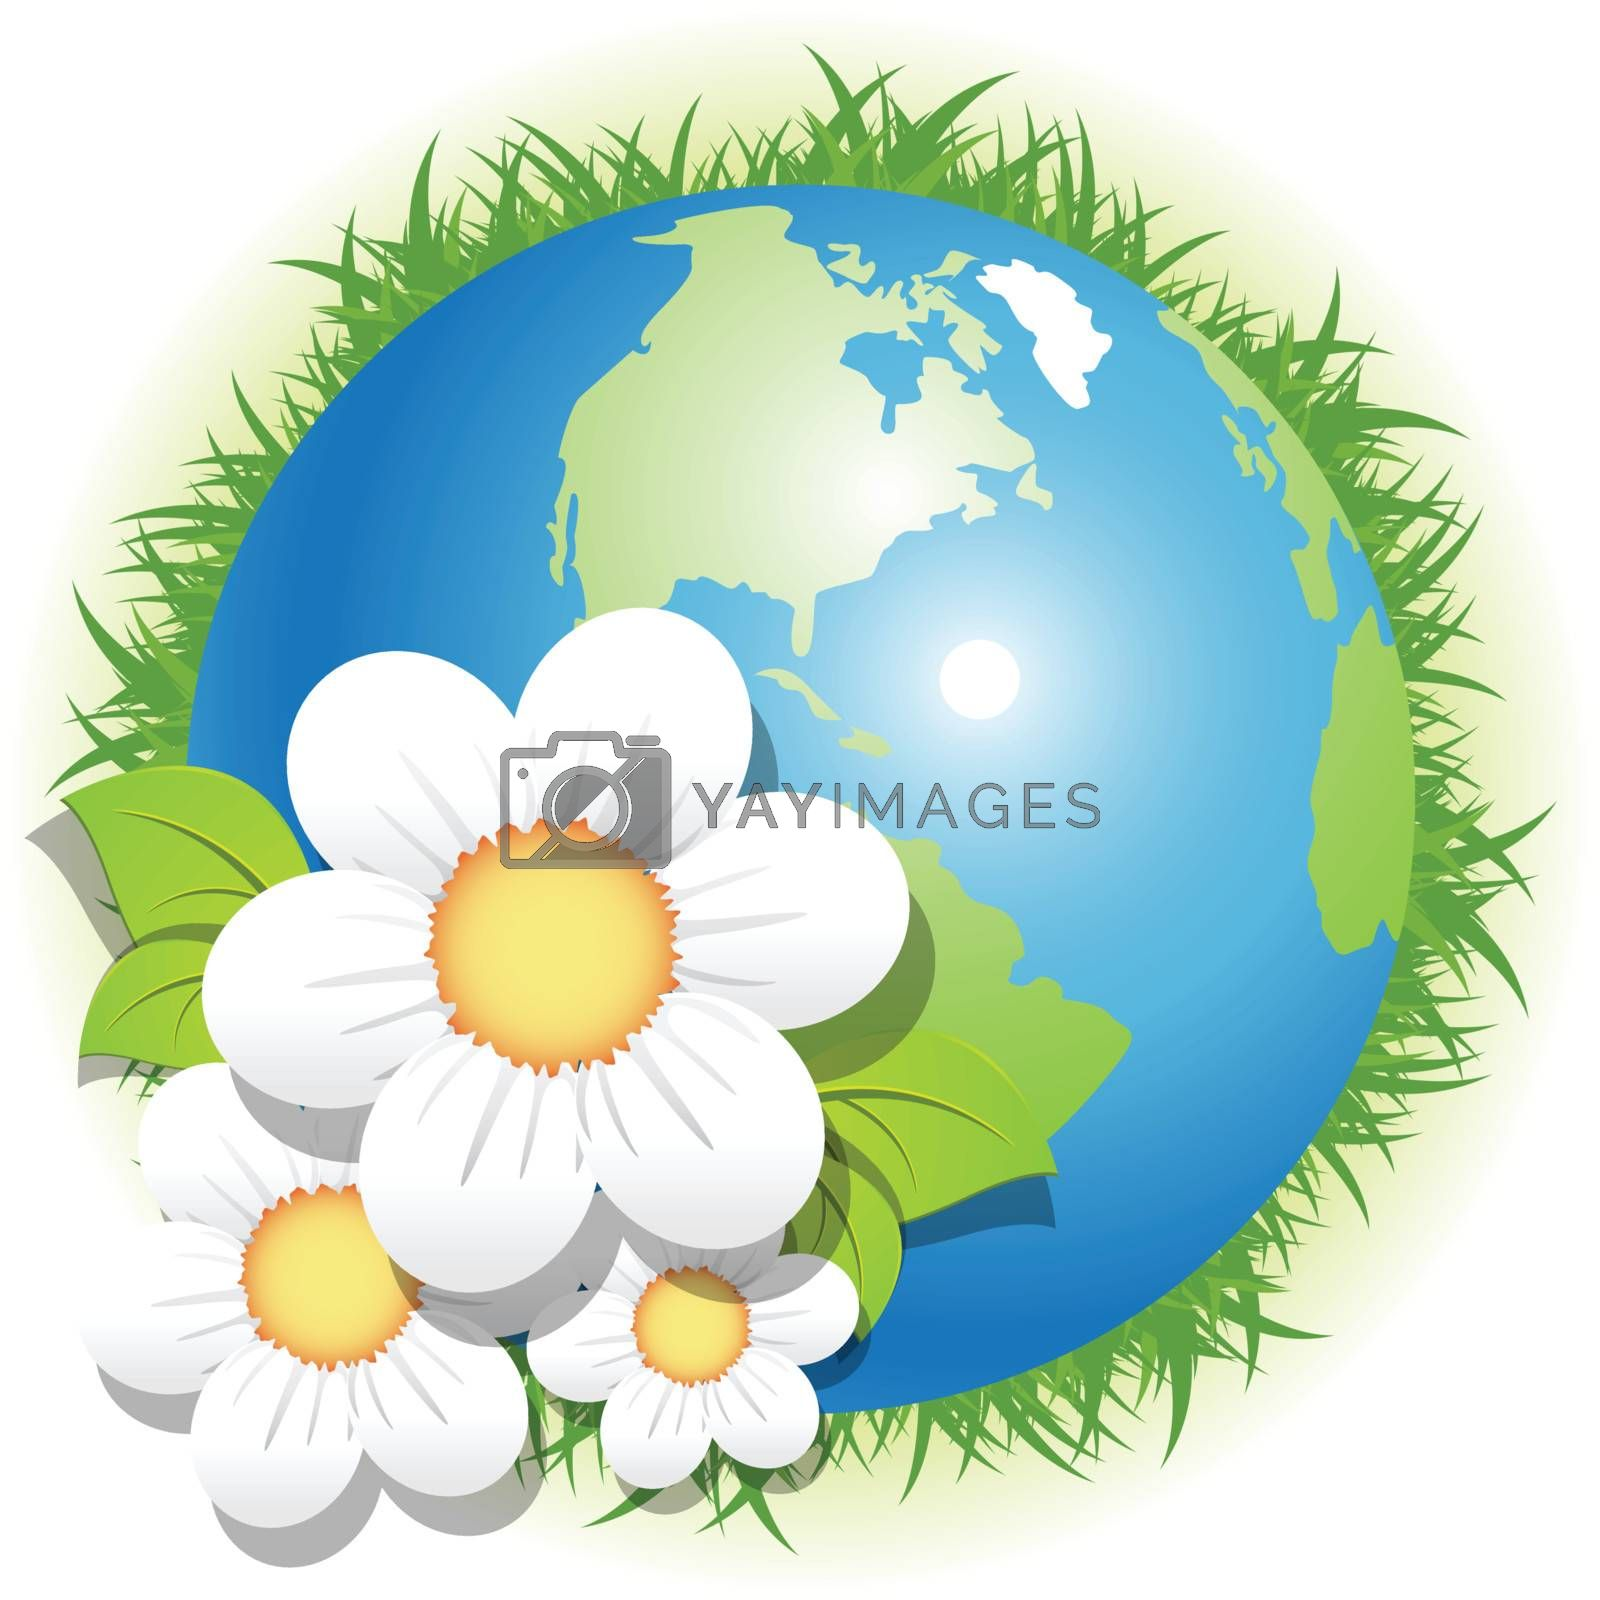 Illustration, blue globe, herb and flowers on white background